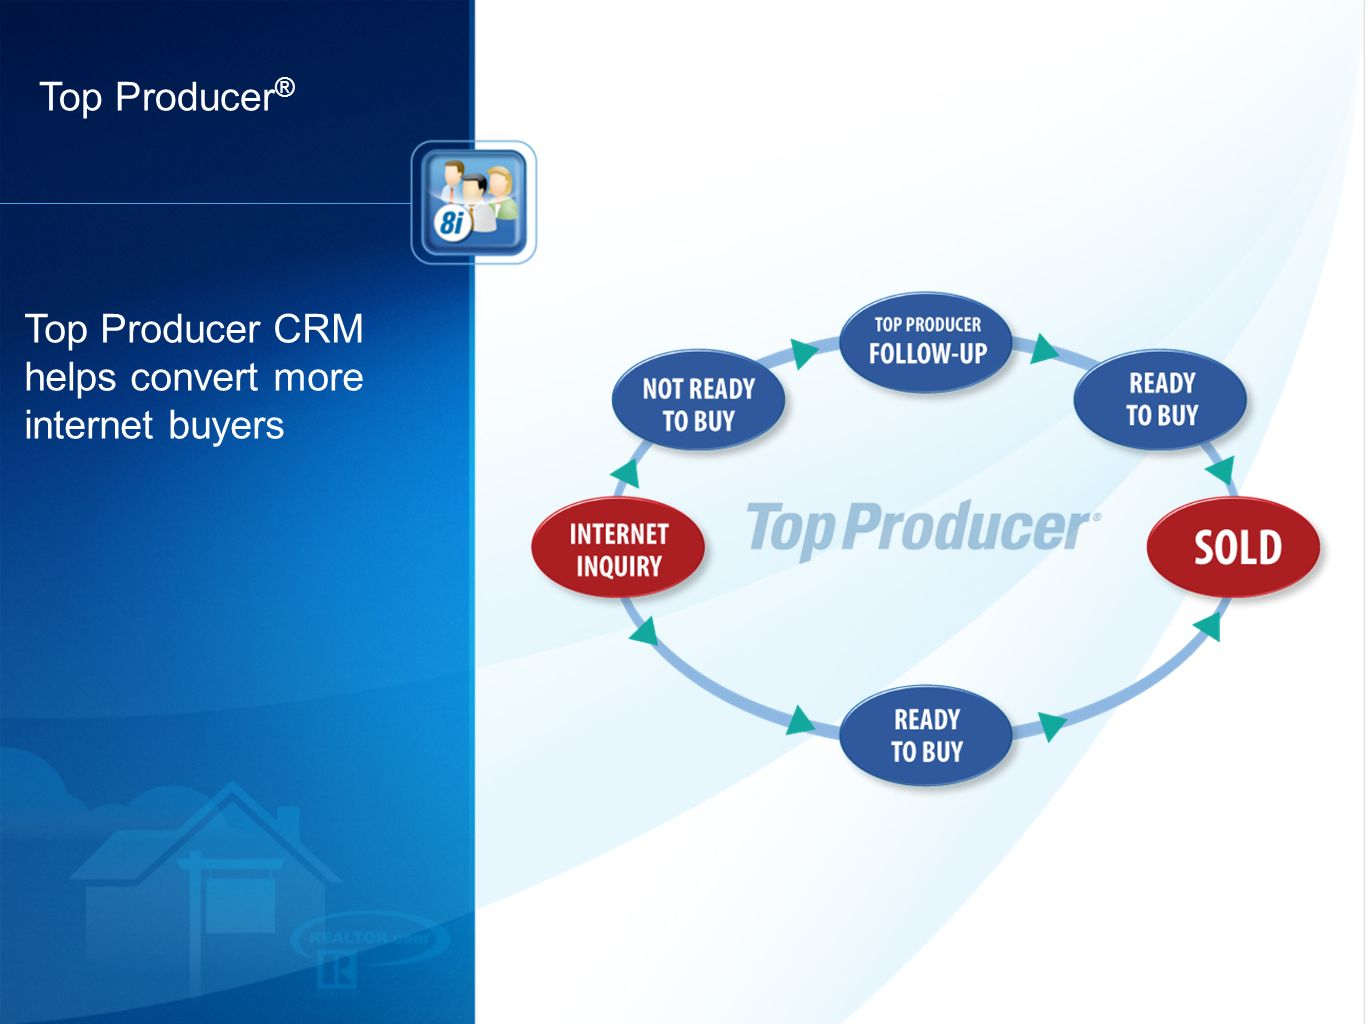 Top Producer ® Top Producer CRM helps convert more internet buyers